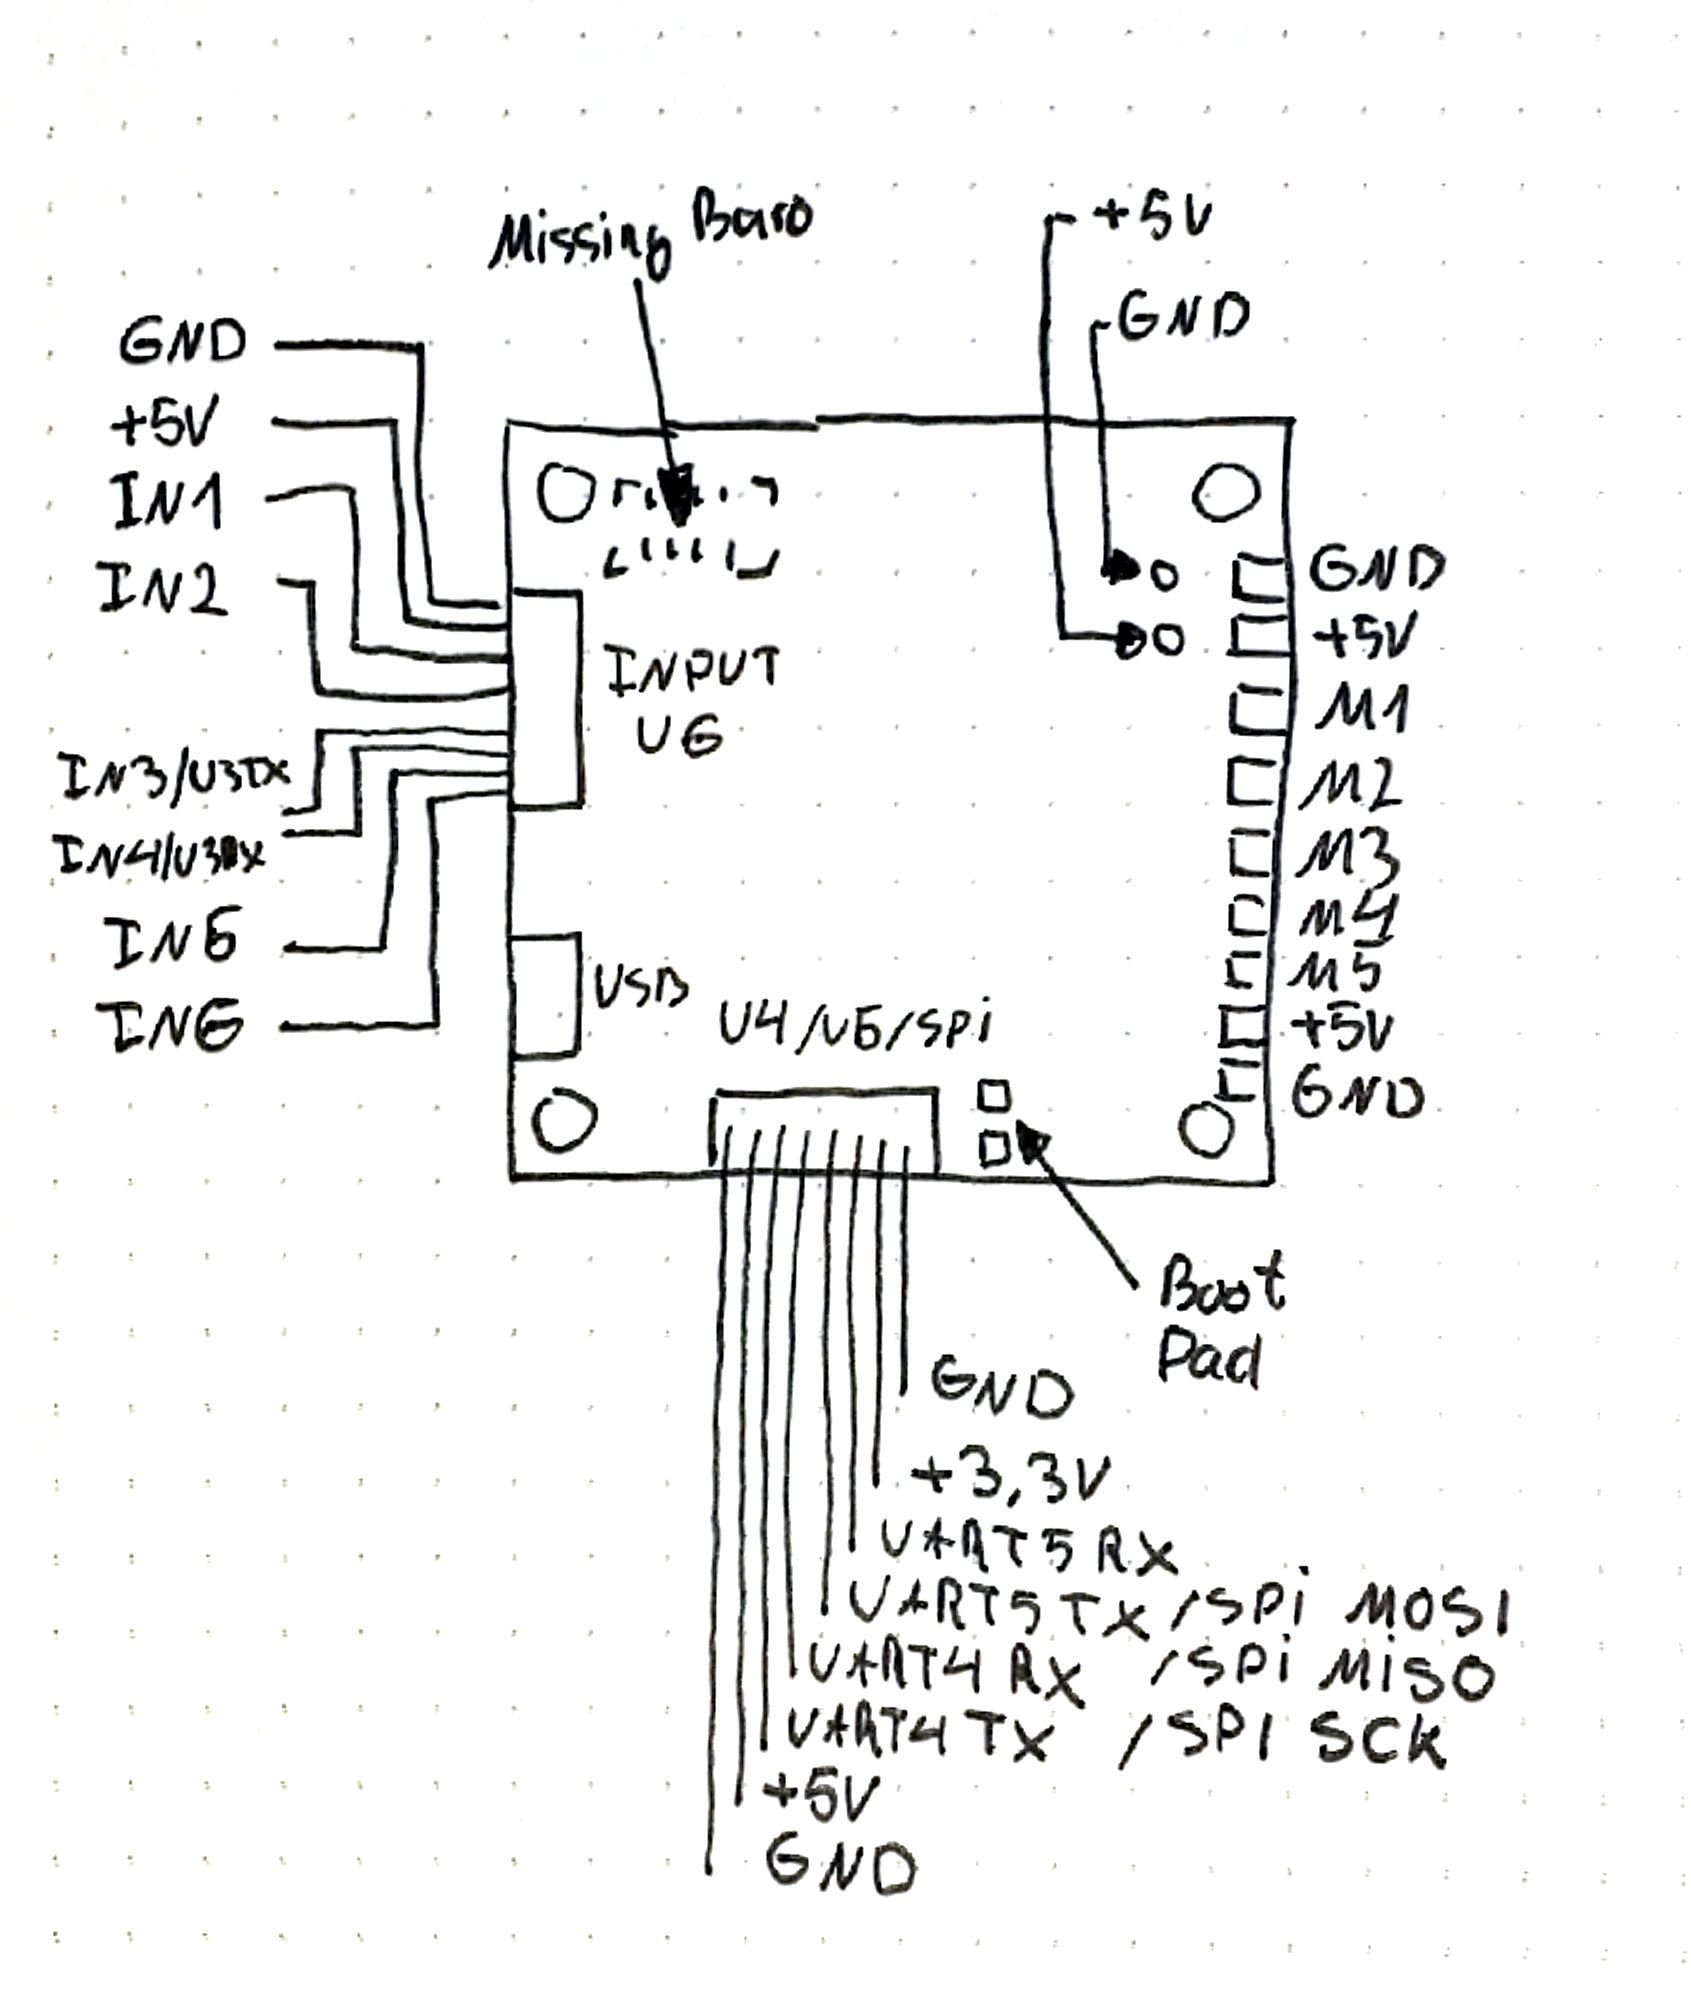 small resolution of pin by felix vatamanu on drones in 2018 pinterest diagram wire